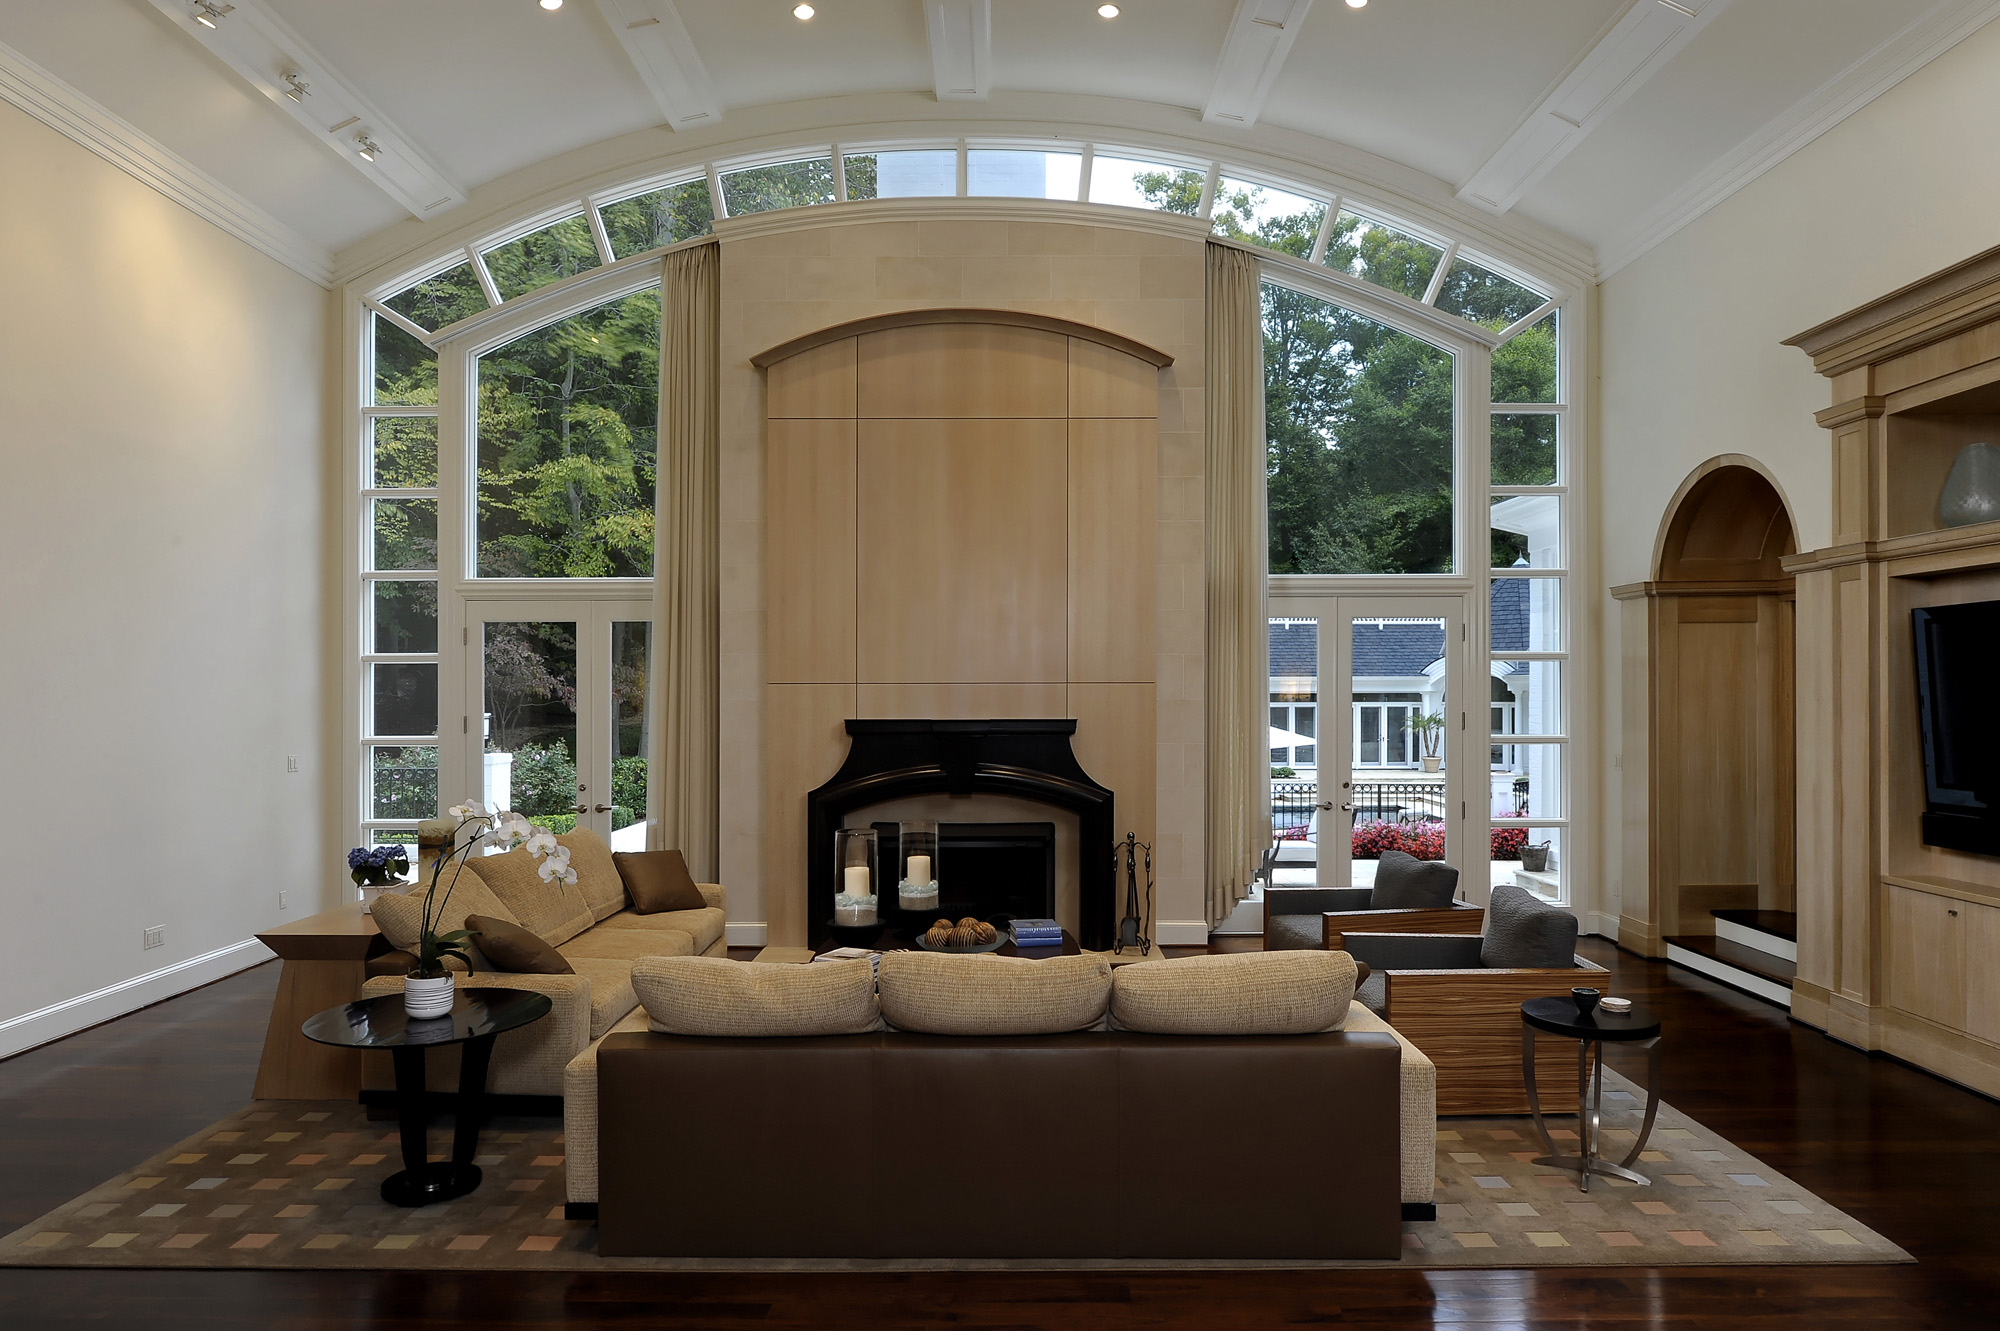 Purchase Consultation And Whole House Renovation In Potomac, Maryland